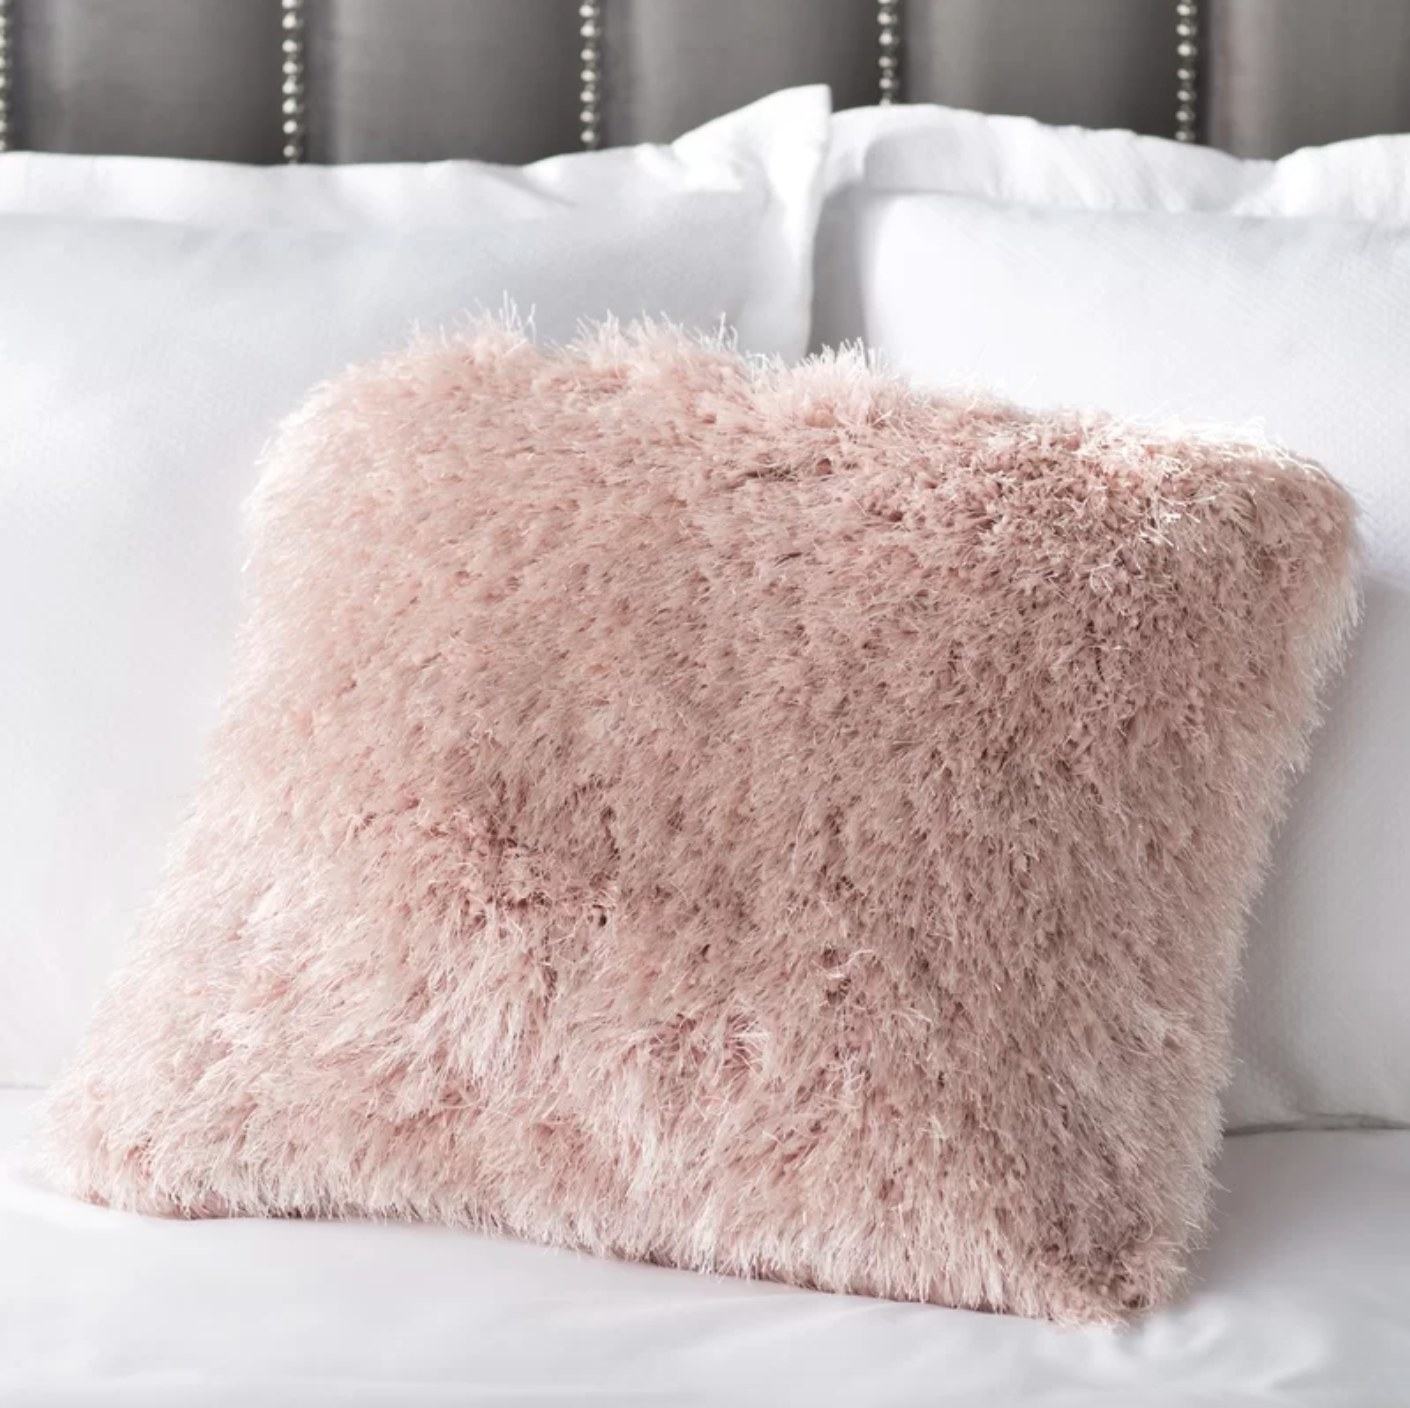 The square shag pillow in rose